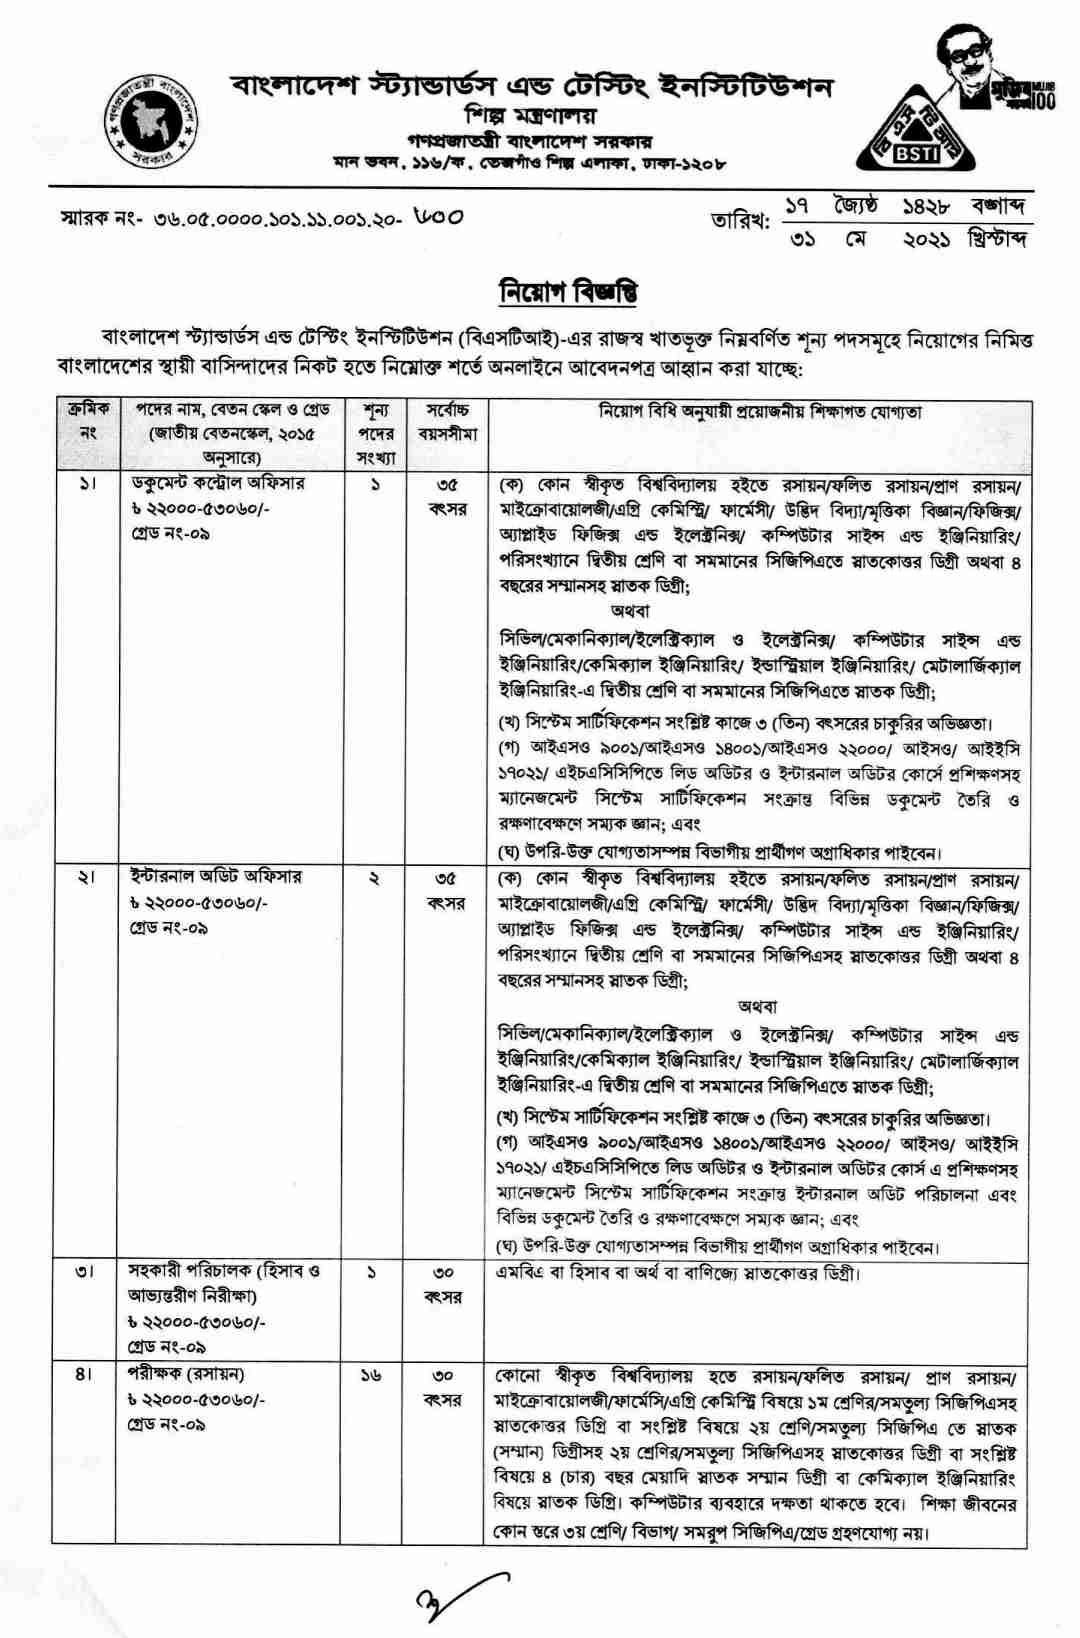 Bangladesh Standards and Testing Institution BSTI Job circular 2021, BSTI job circular 2021, bsti.teletalk.com.bd apply, bsti.gov.bd job circular 2021, BSTI job circular 2021 New jobs Apply,